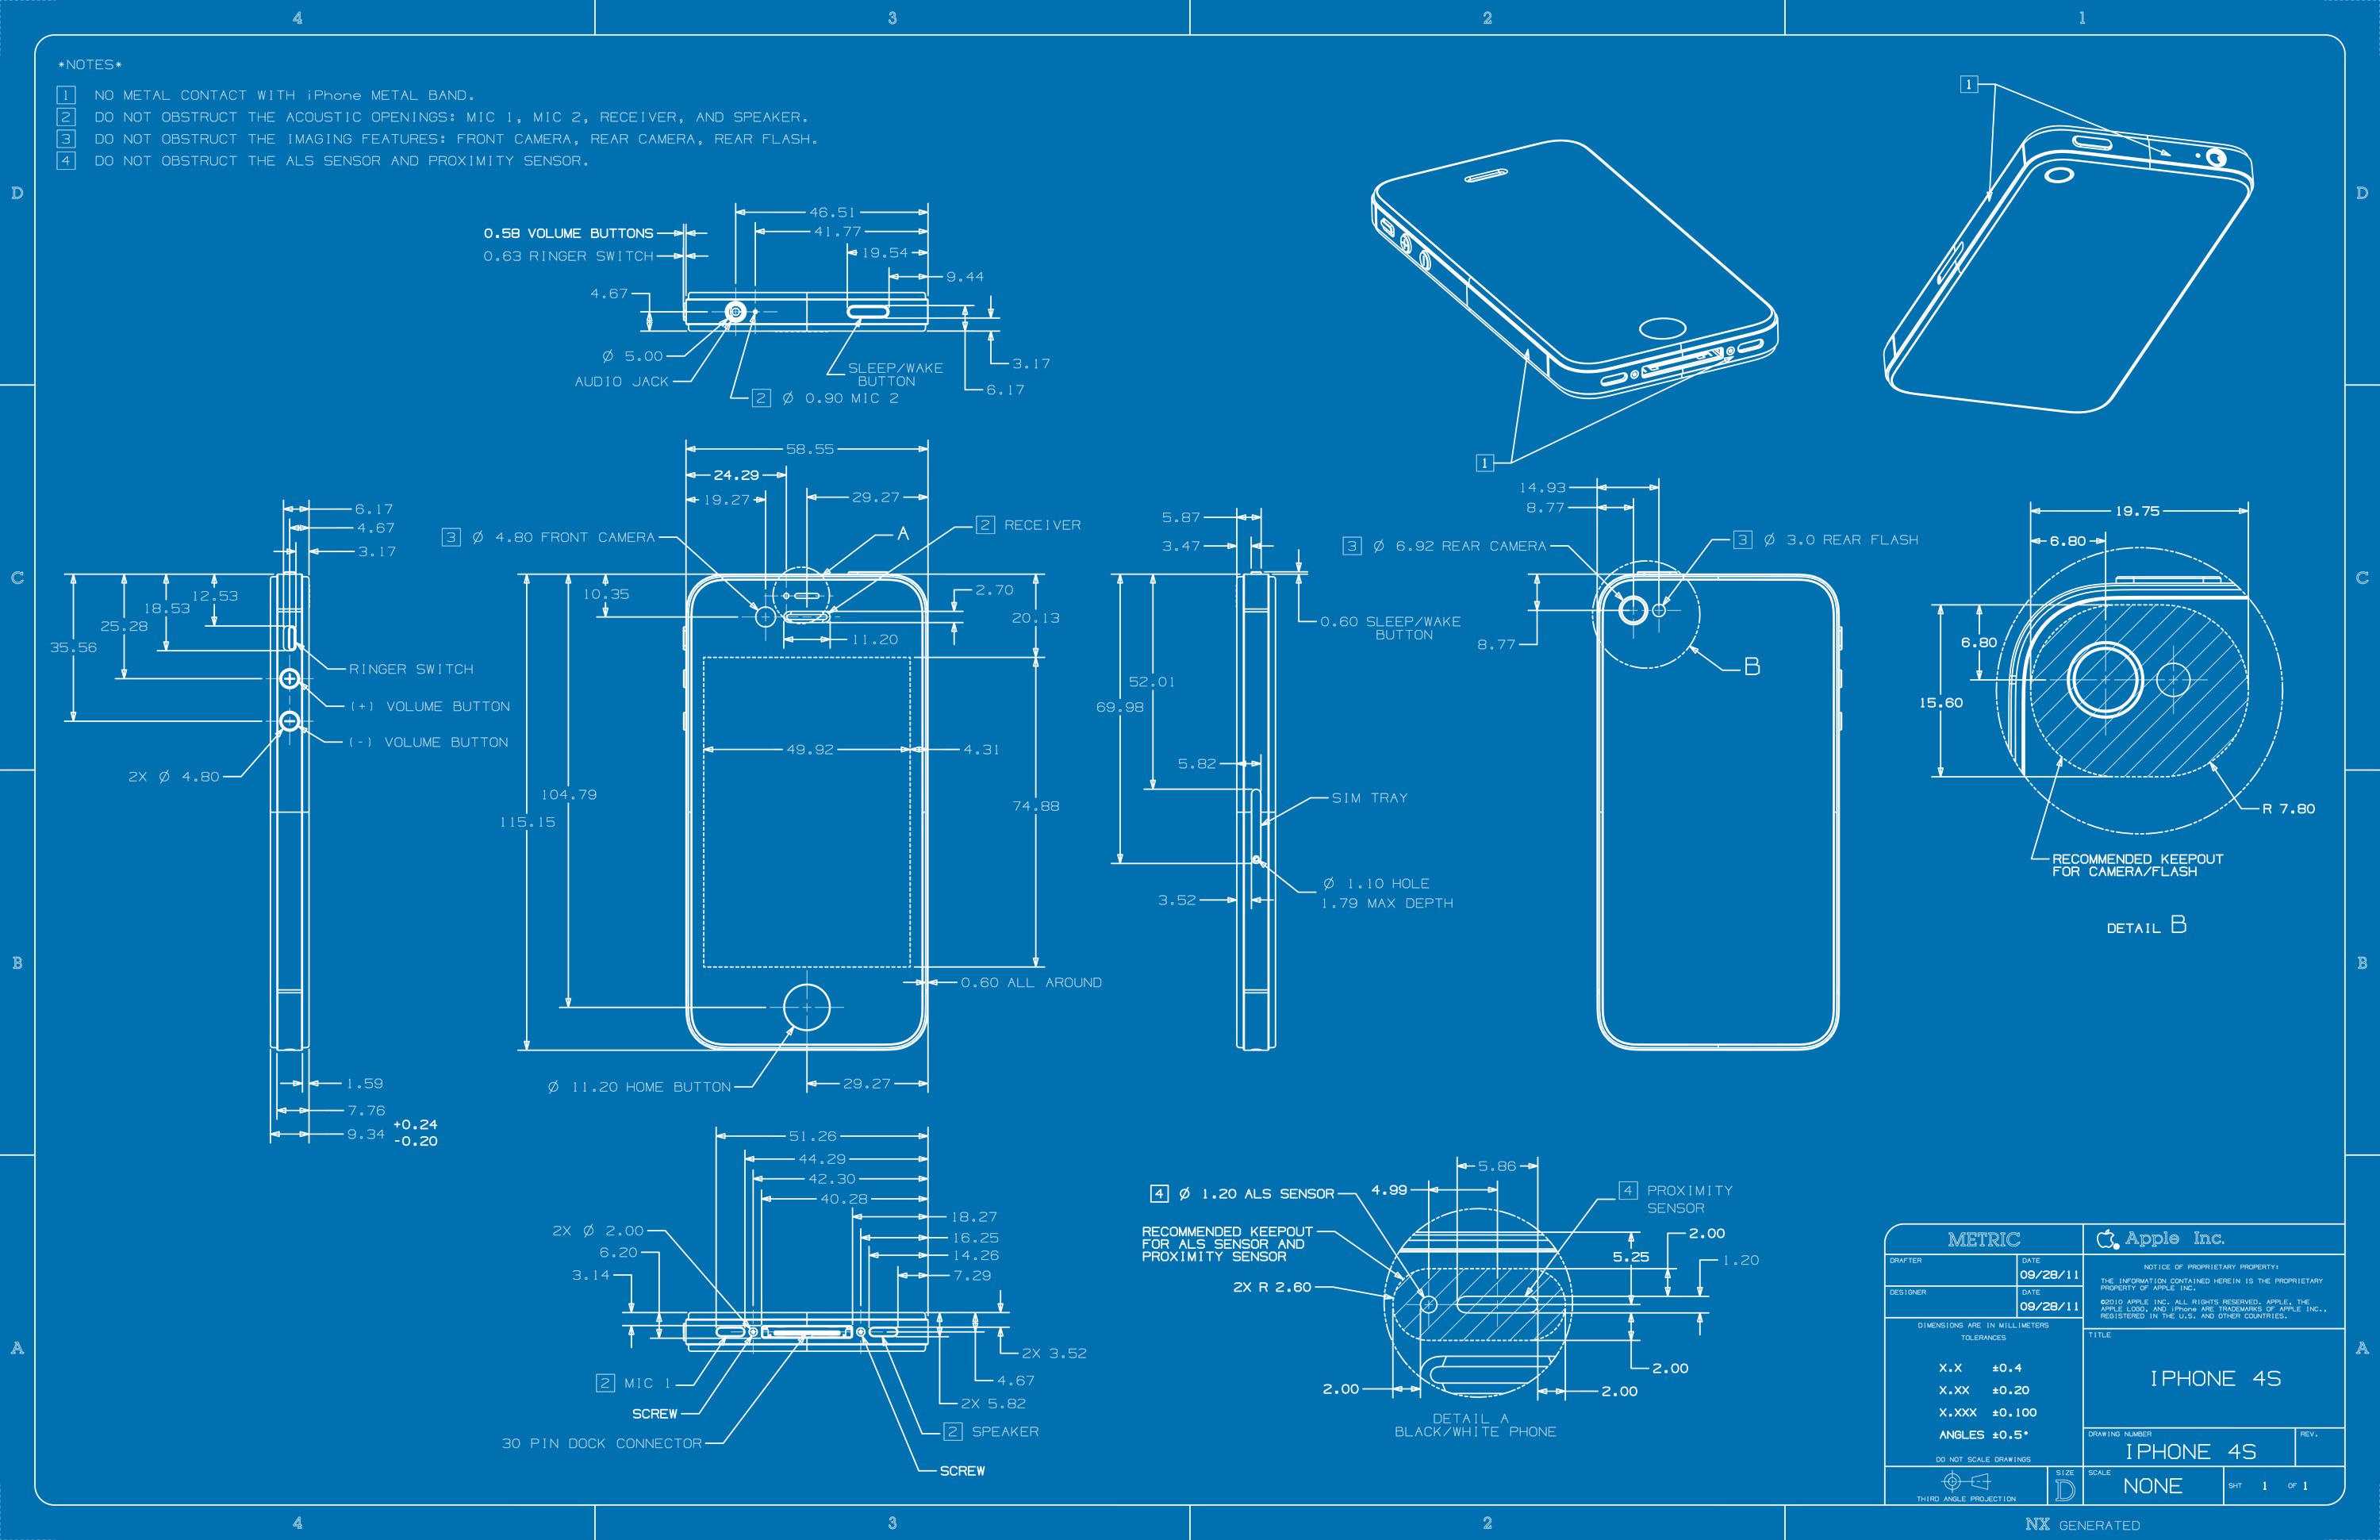 Mac spoilers iphone dimensions blueprints wallpaper 120157 apple inc blueprint iphone iphone case making wallpaper malvernweather Image collections